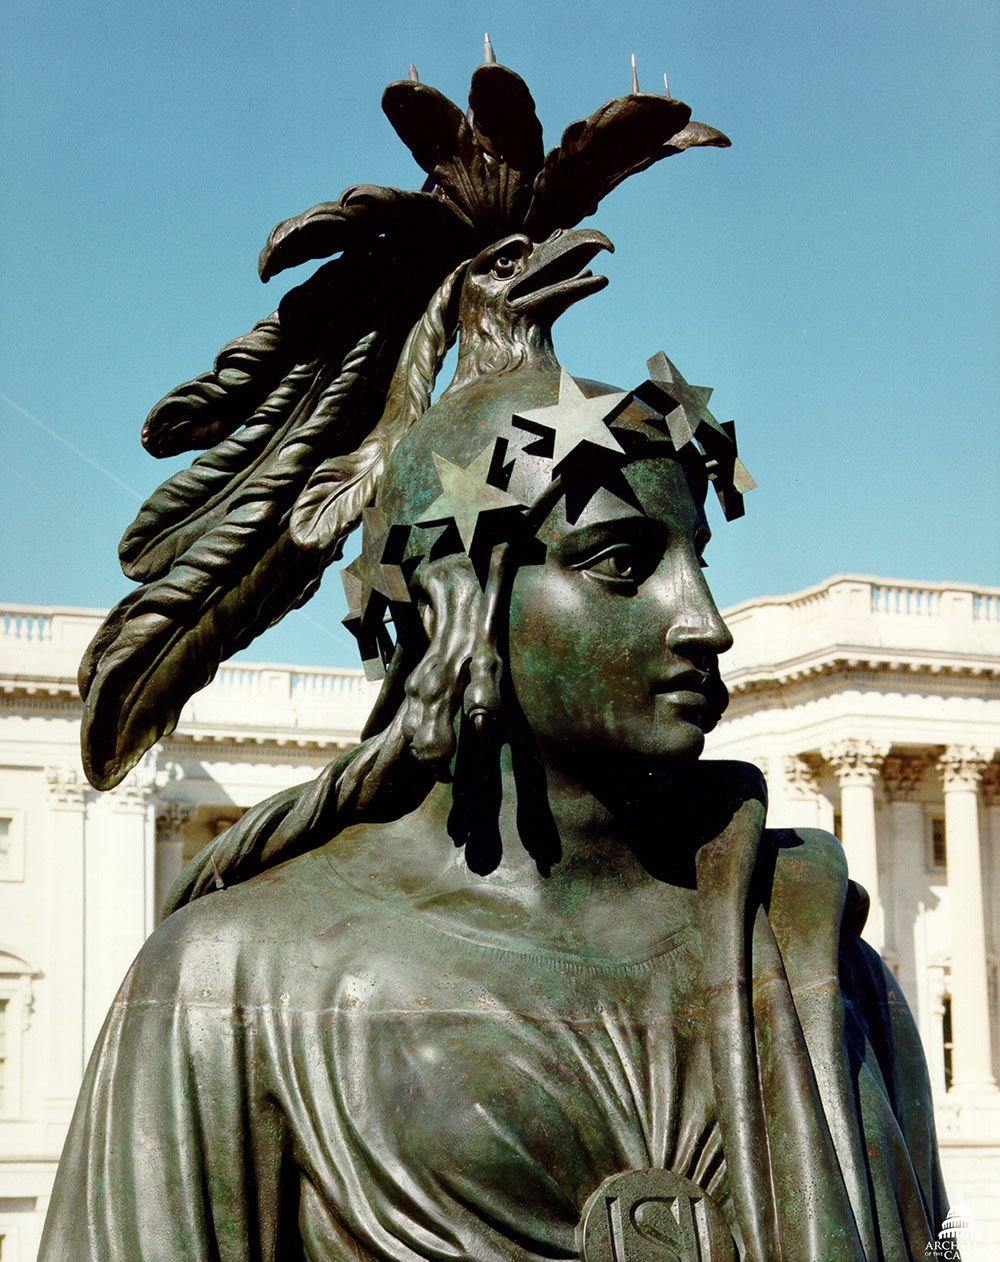 Close-up detail photo with Statue of Freedom during conservation in 1993.